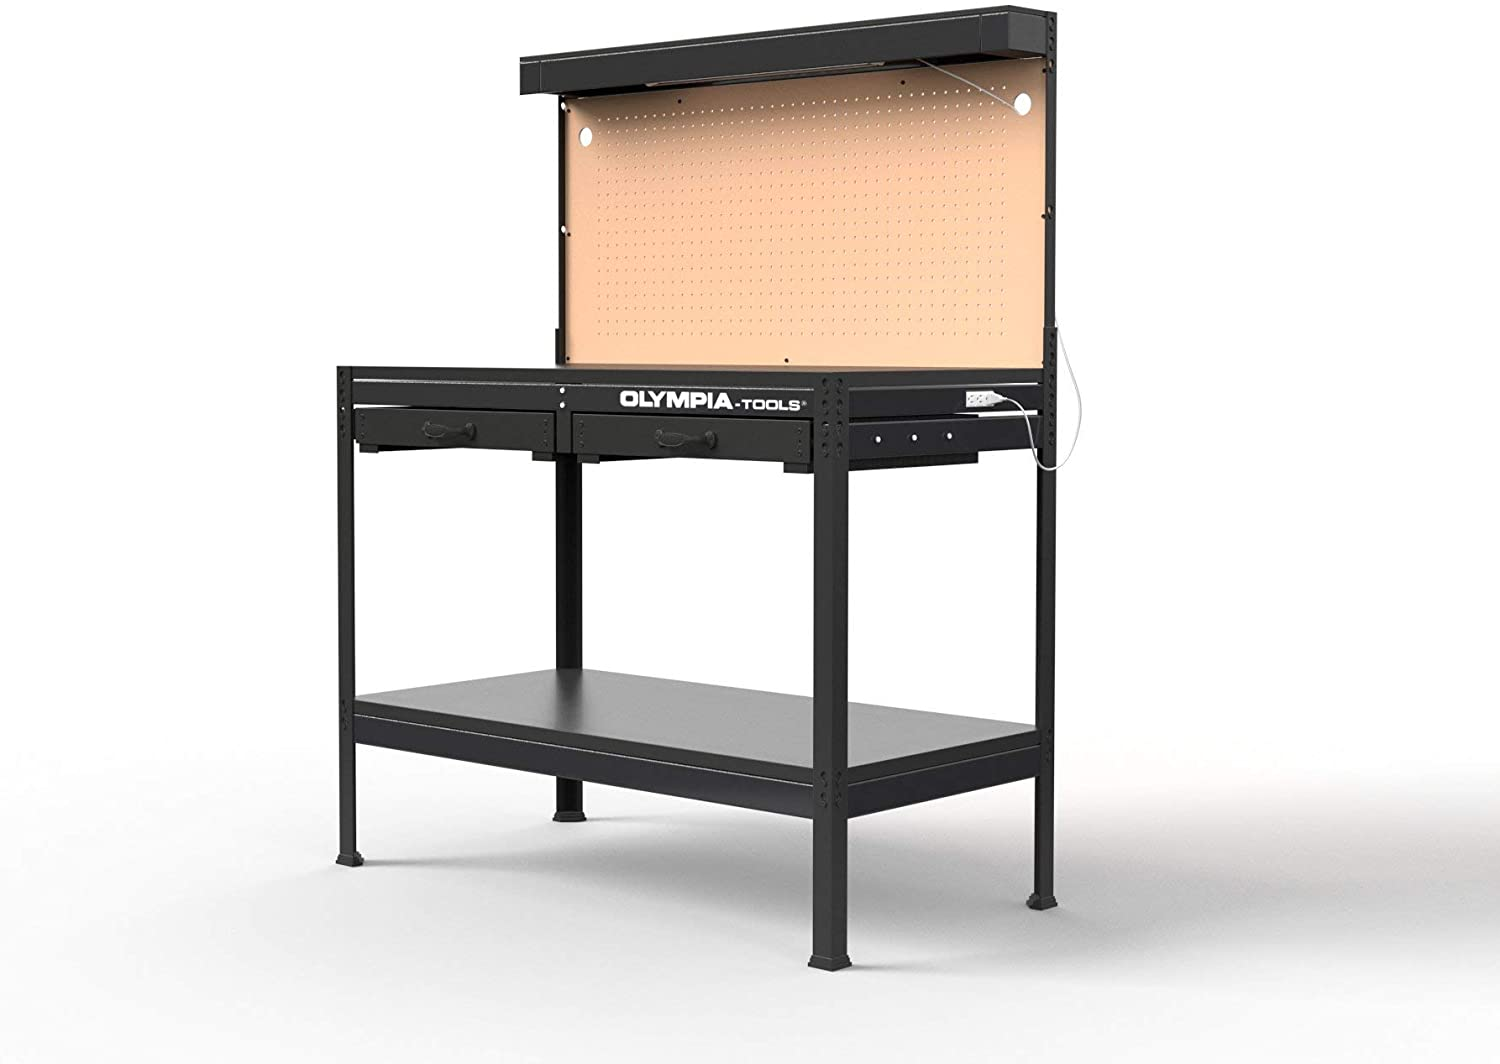 Olympia Tools Multipurpose Workbench With Light, 87-883-917